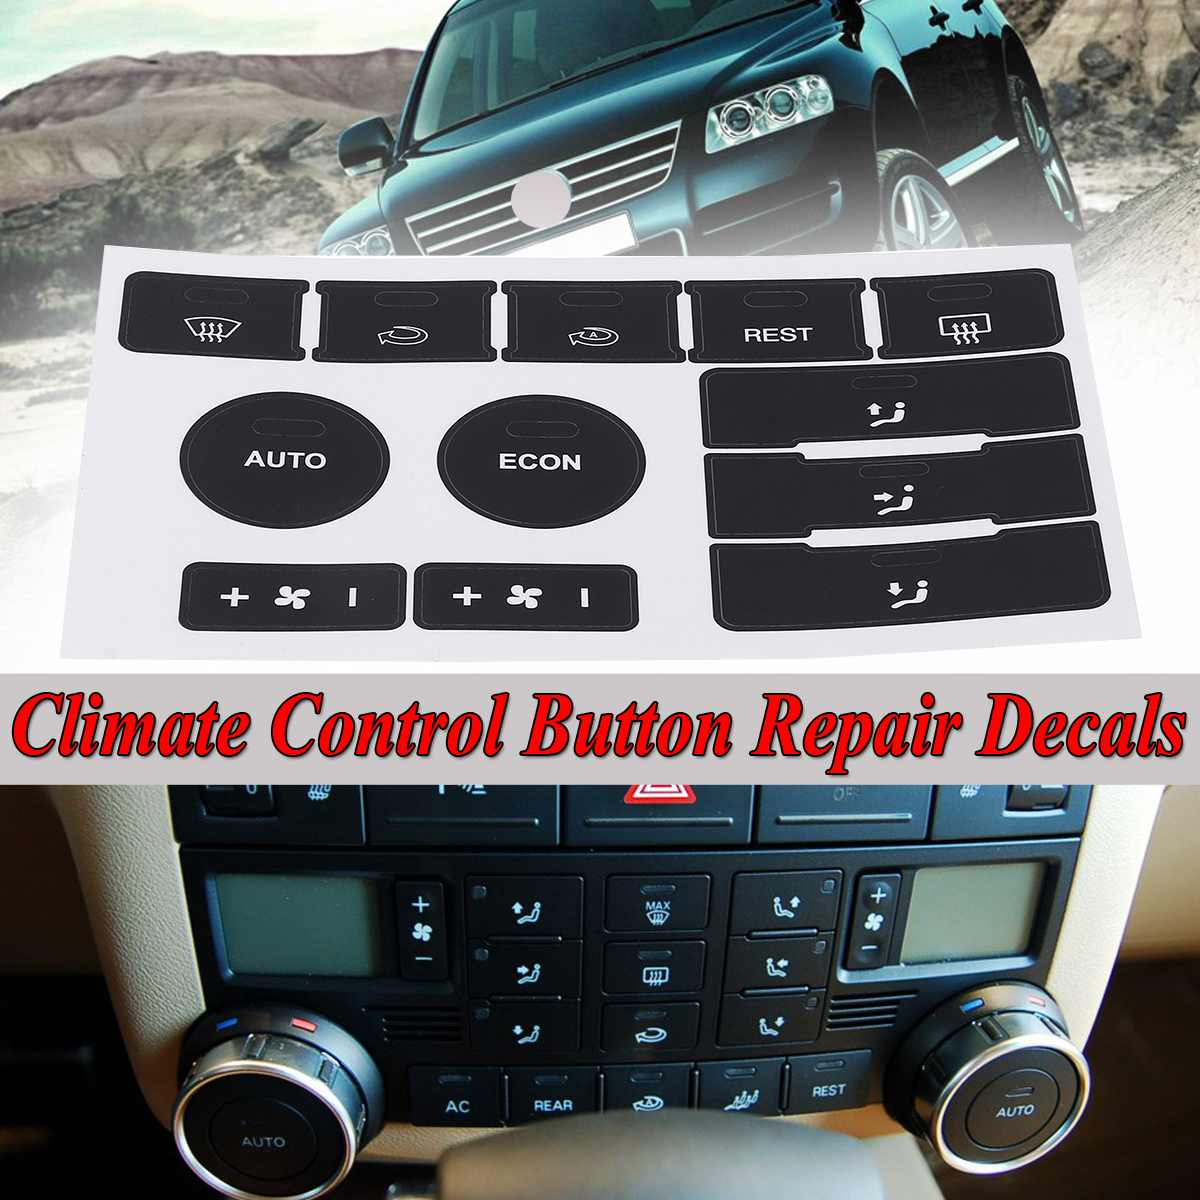 Matte Black Car Air Condition Climate Control Button Repair Decals For VW For Volkswagen Touareg 2004-2009 Fix Ugly Worn Button